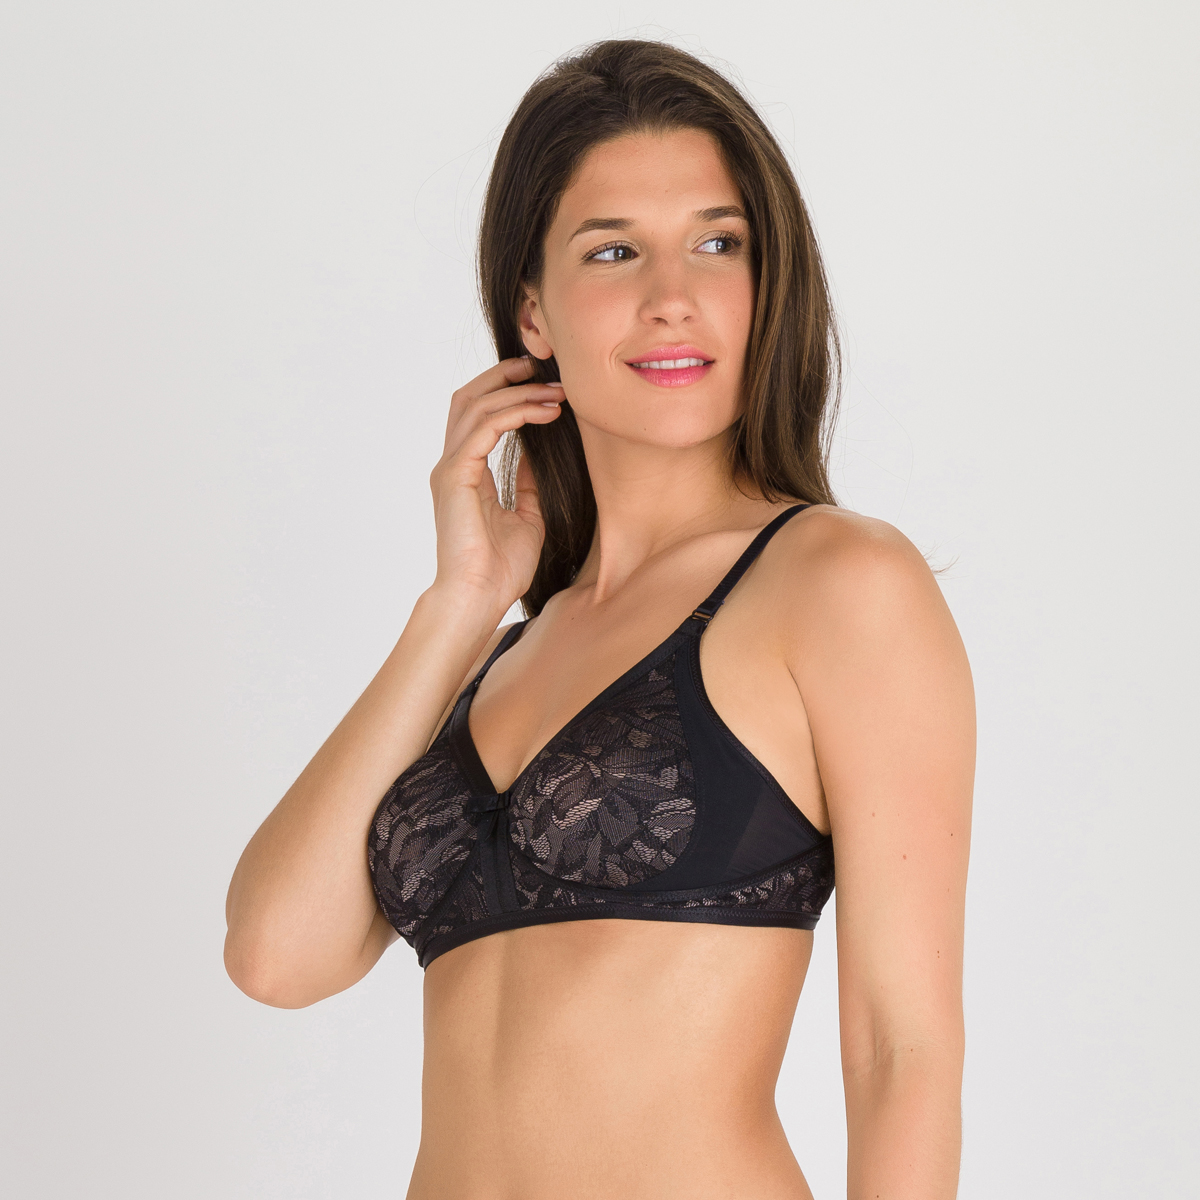 5090839e1e3 Non-wired Bra in Black and Grey - Ideal Beauty Lace-PLAYTEX ...